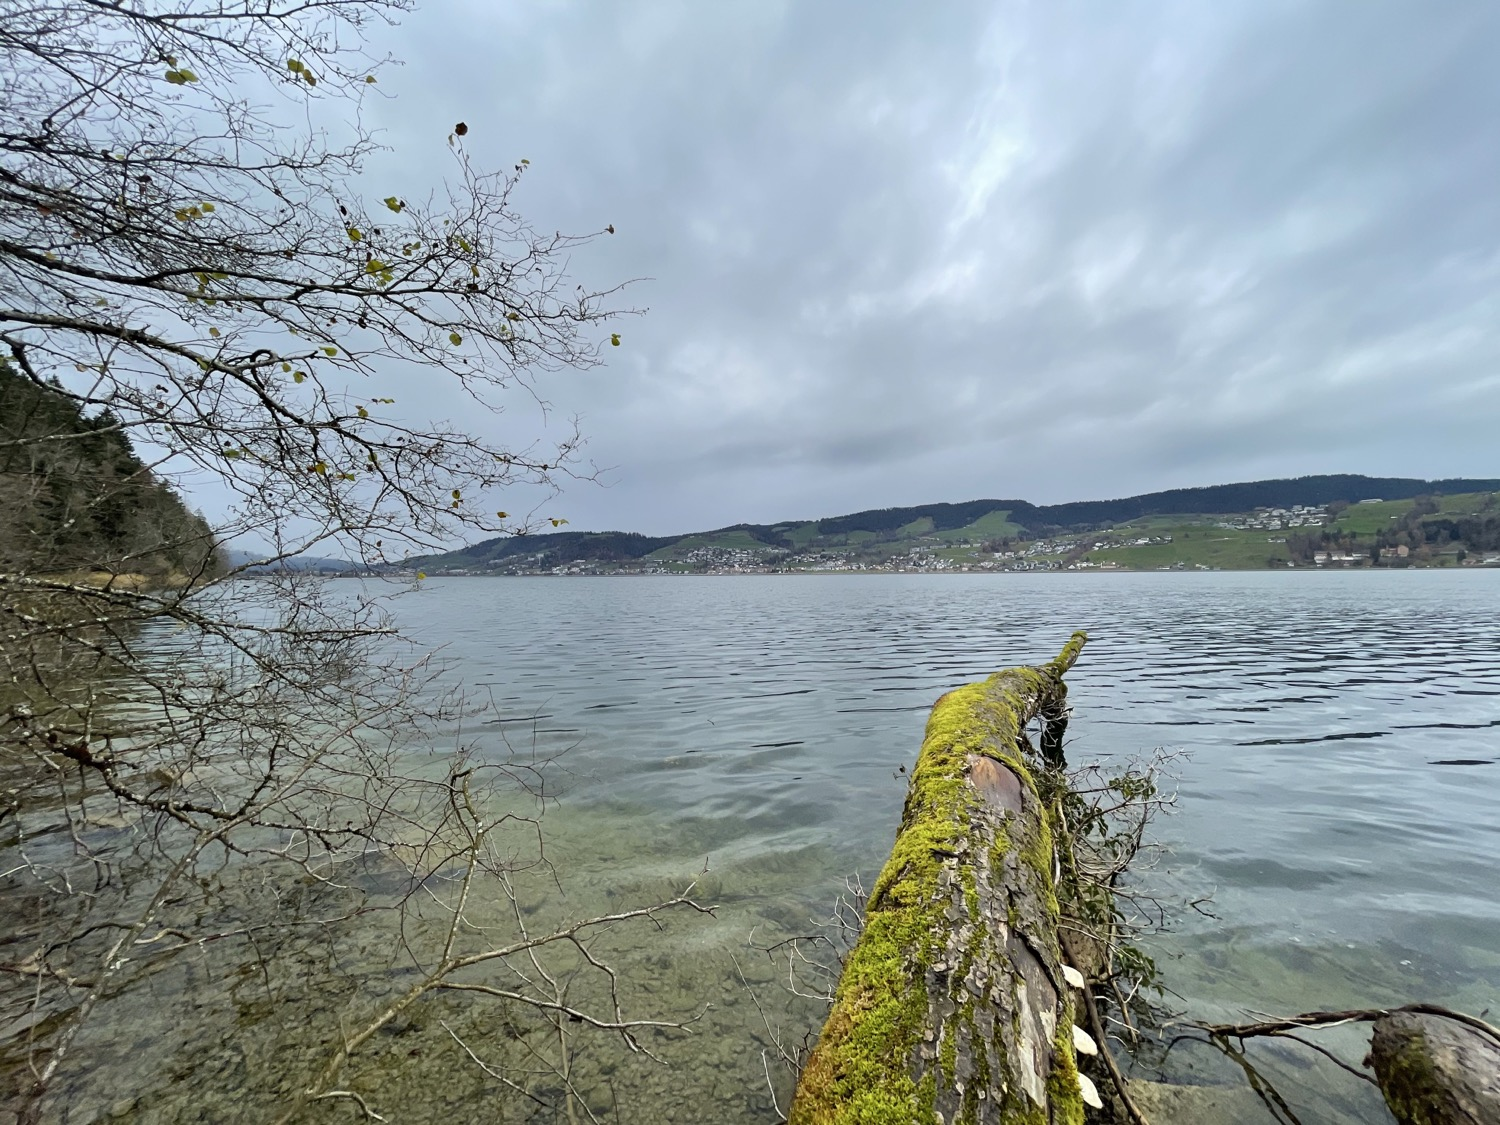 Back from the walk around the lake. Was surprised by the rain in the middle and got soaked, but otherwise, it was relaxing.